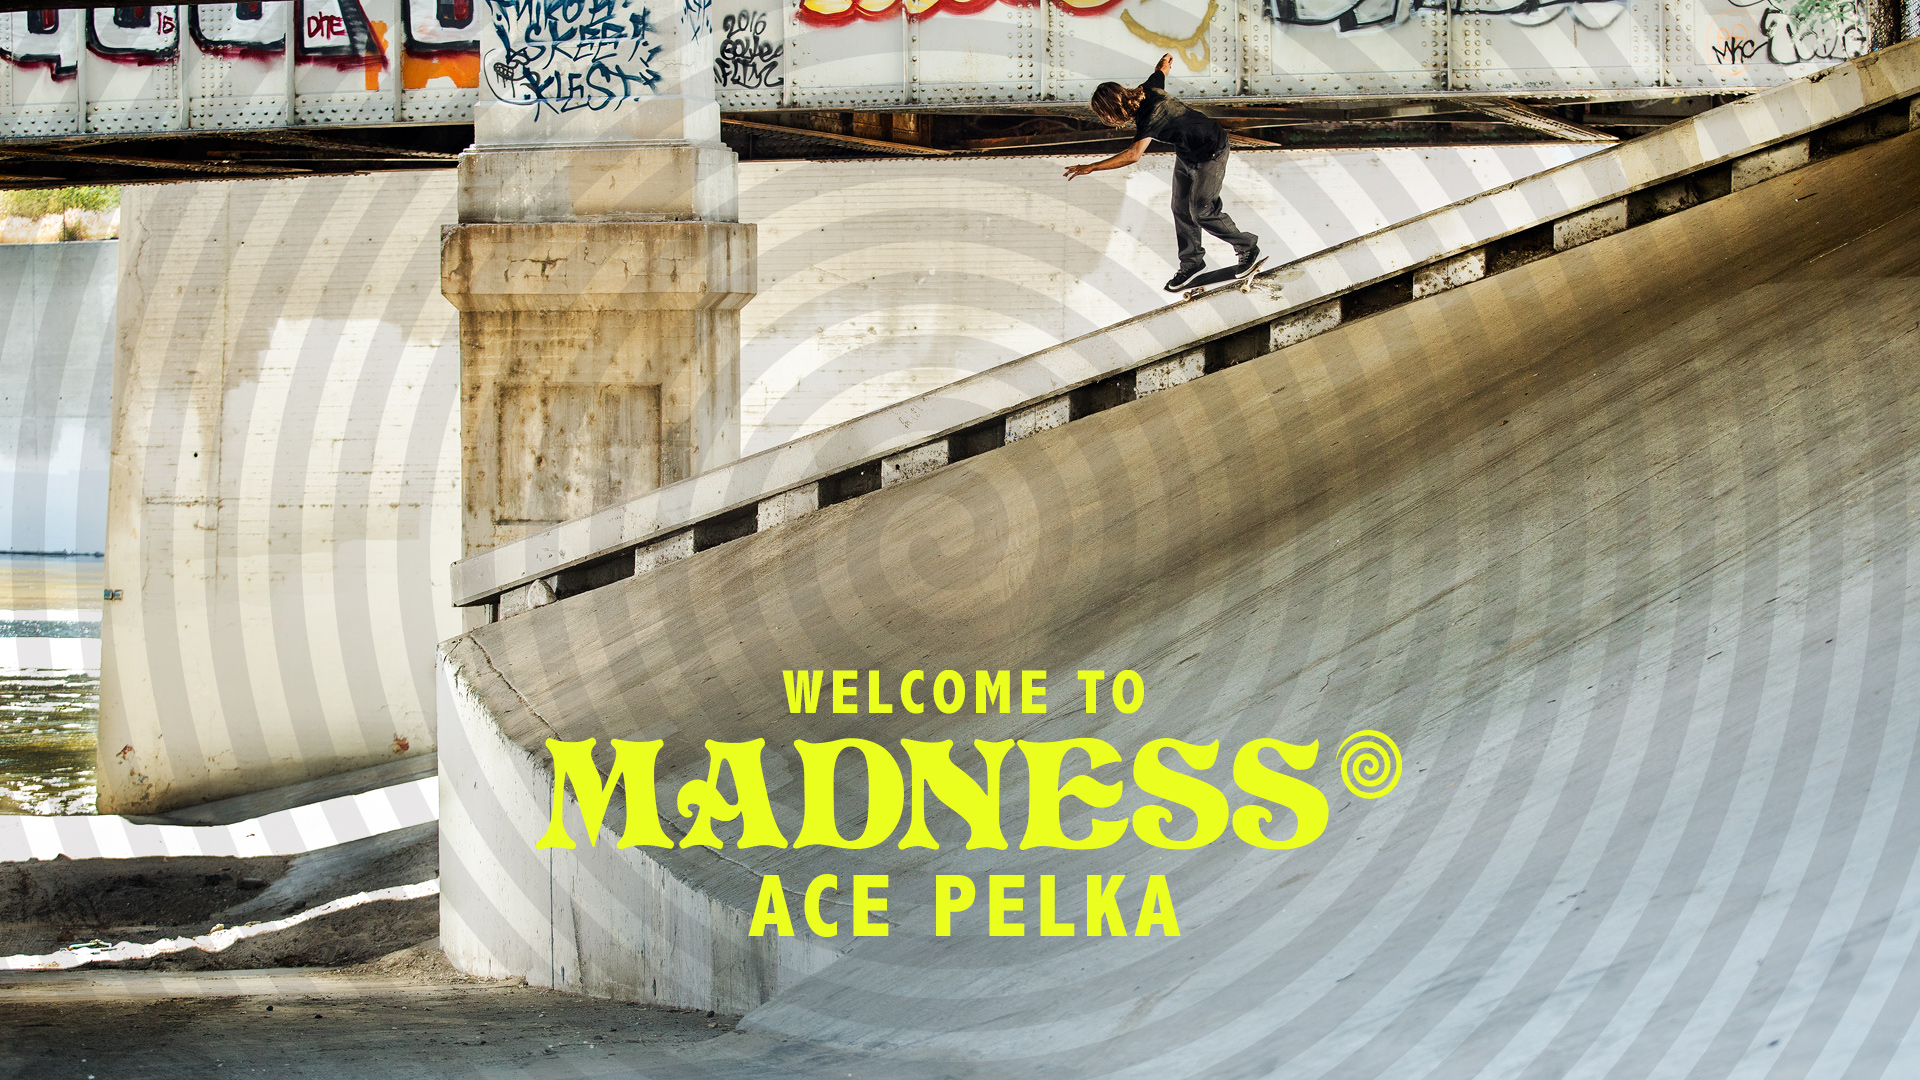 Madness welcome Ace Pelka